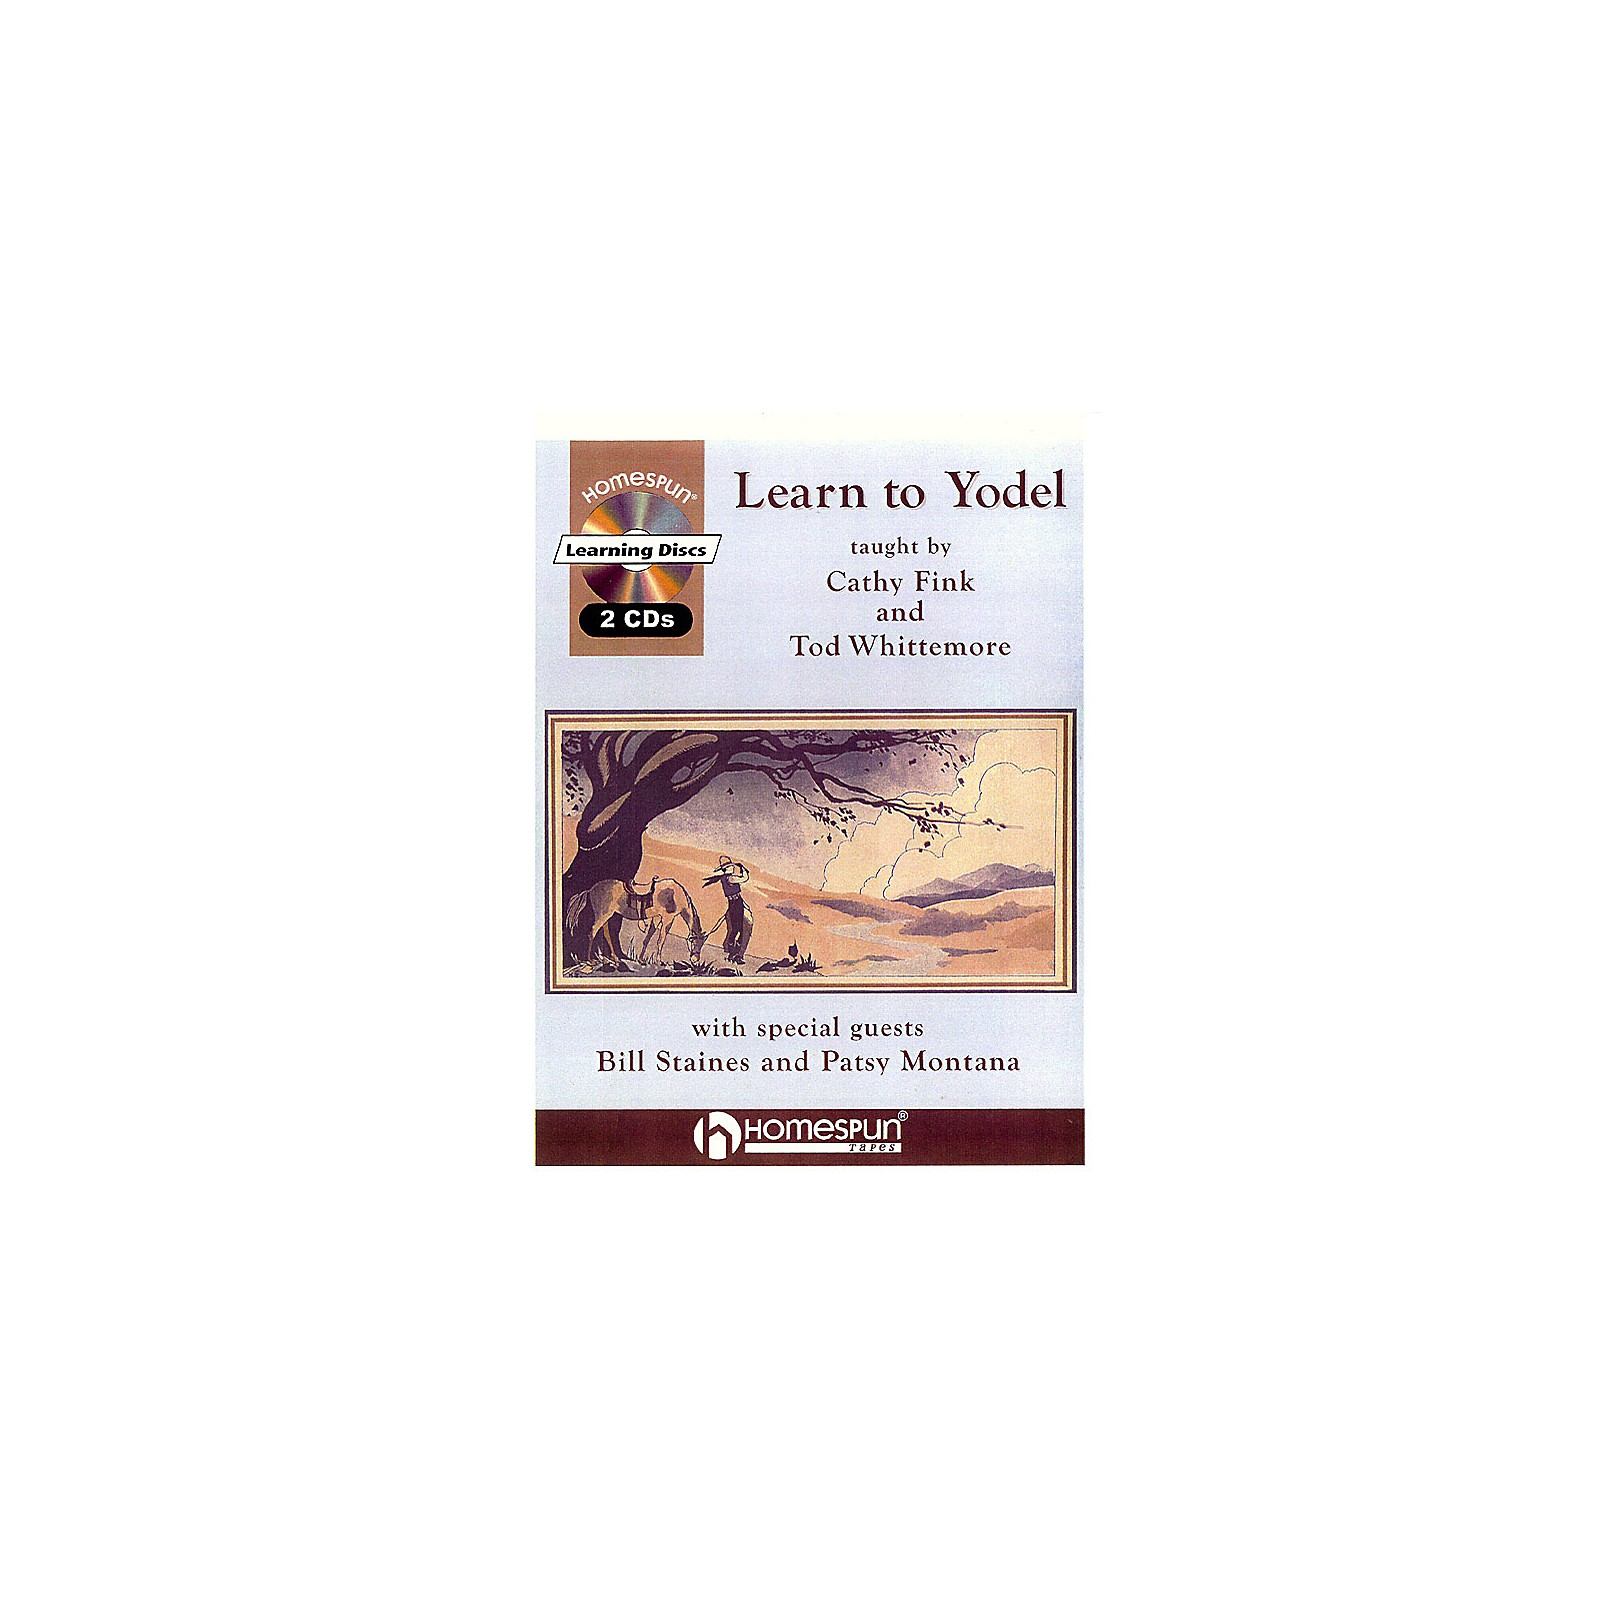 Homespun Learn to Yodel Homespun Tapes Series  by Cathy Fink